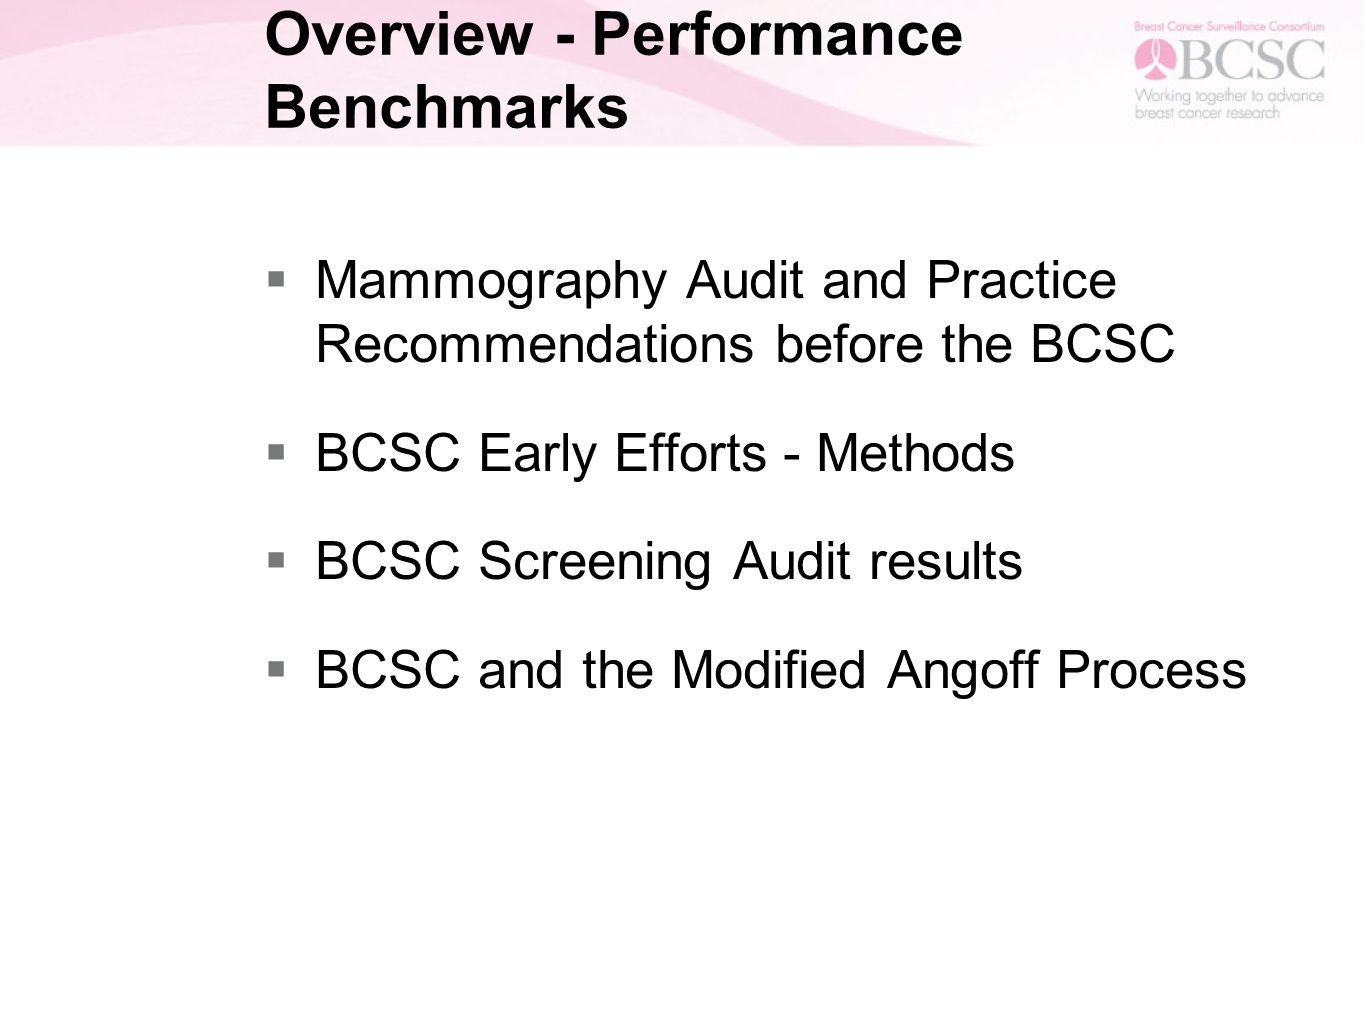 Screening mammography benchmarks modified angoff screening 2 overview performance benchmarks mammography audit and practice recommendations before the bcsc bcsc early efforts methods bcsc screening xflitez Gallery